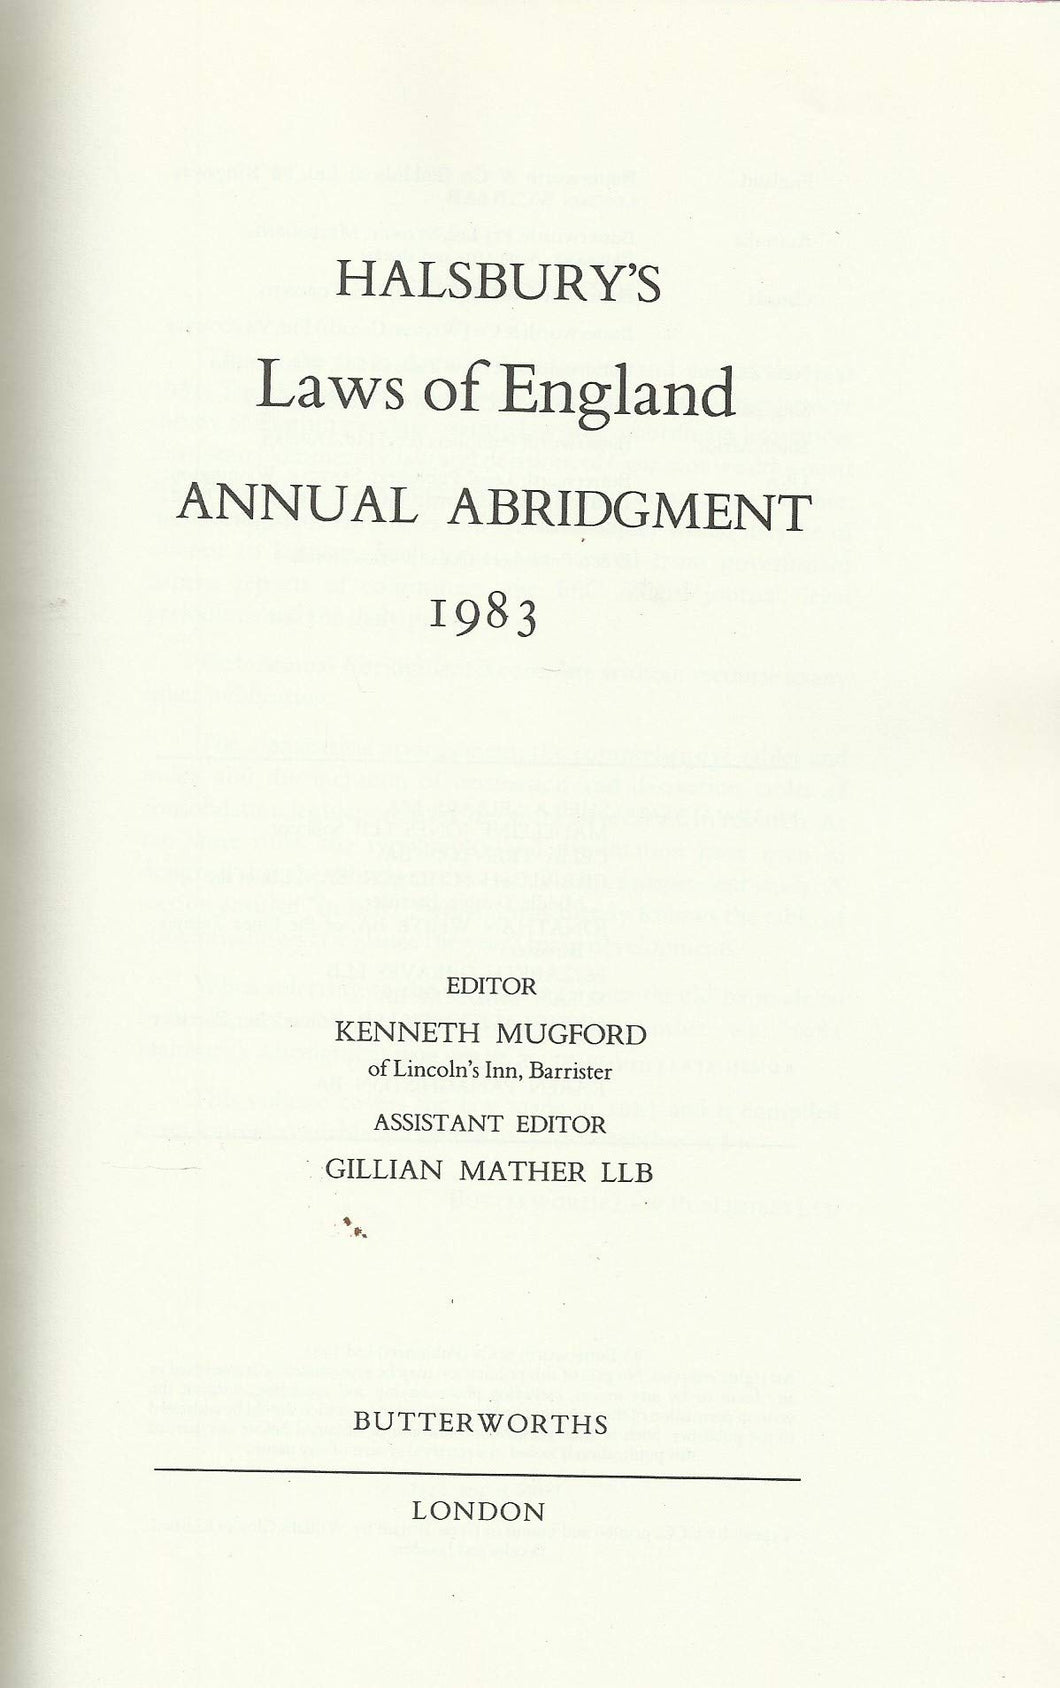 halsbury's laws of england annual abridgement 1983